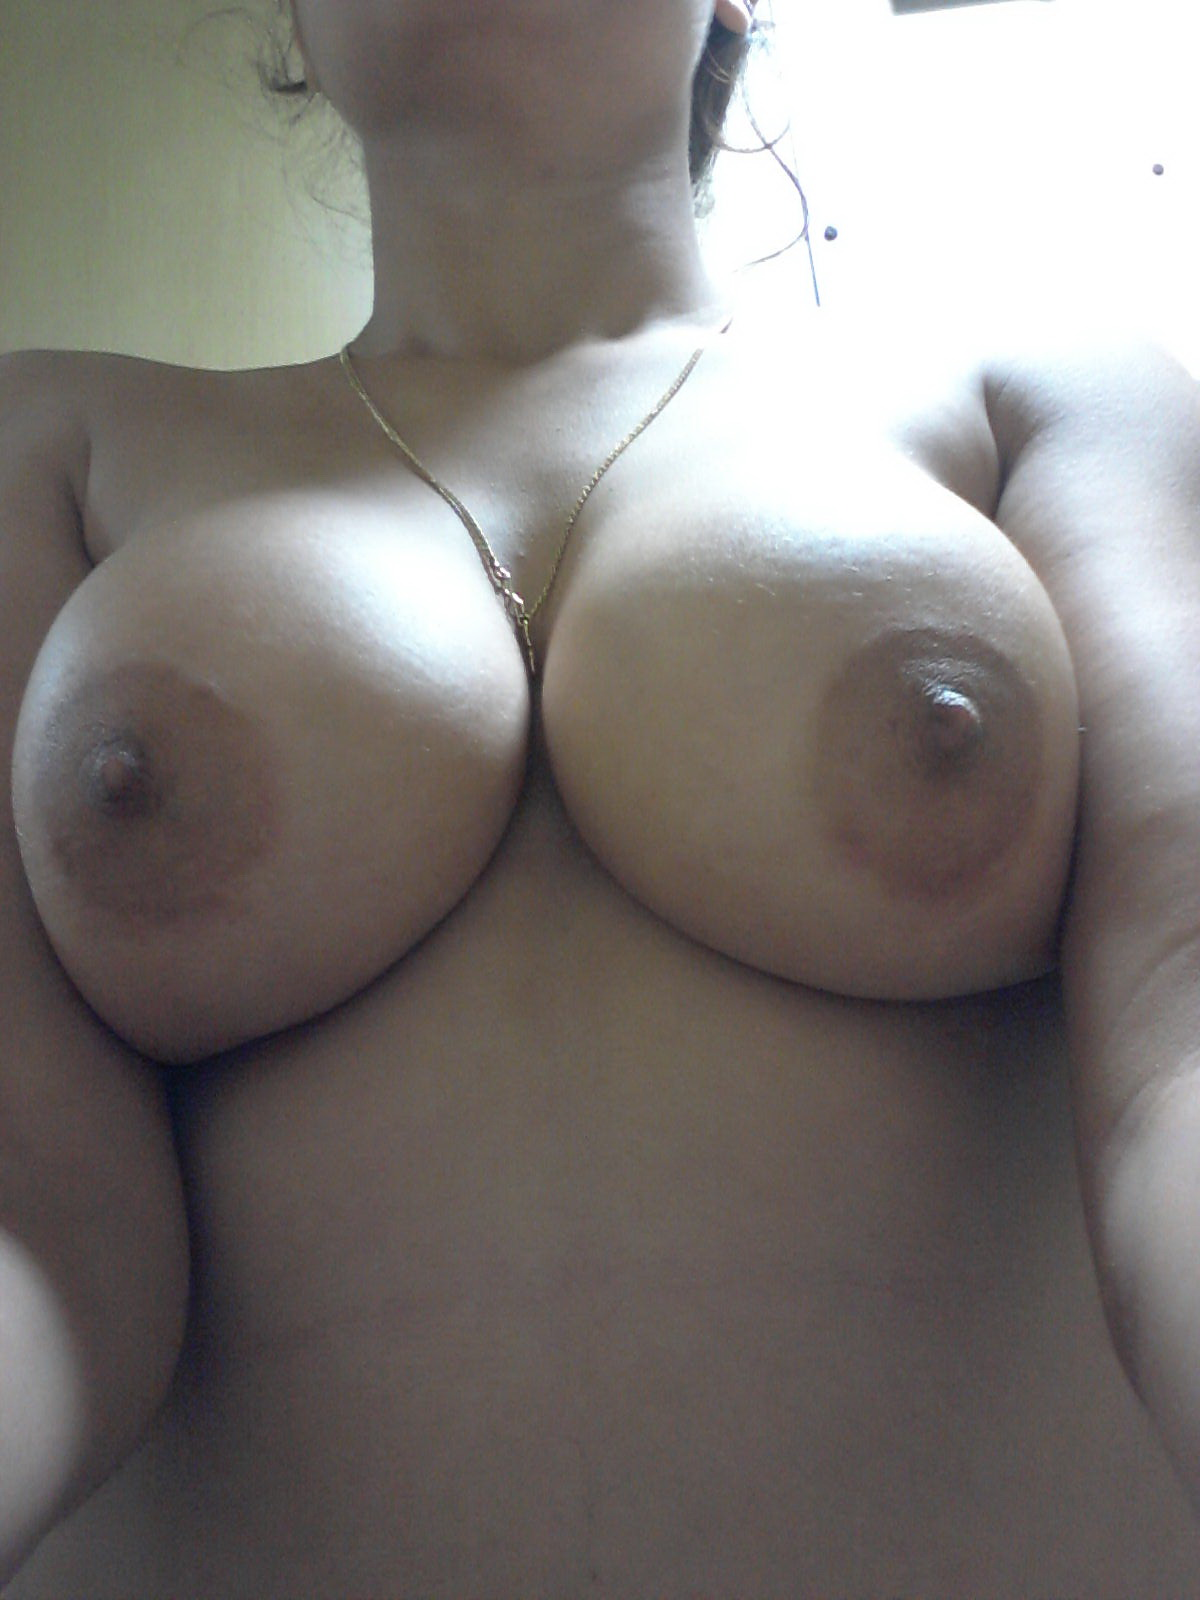 Beautiful Big Boobs On Sexy Indian Girl From Delhi - Real -1620